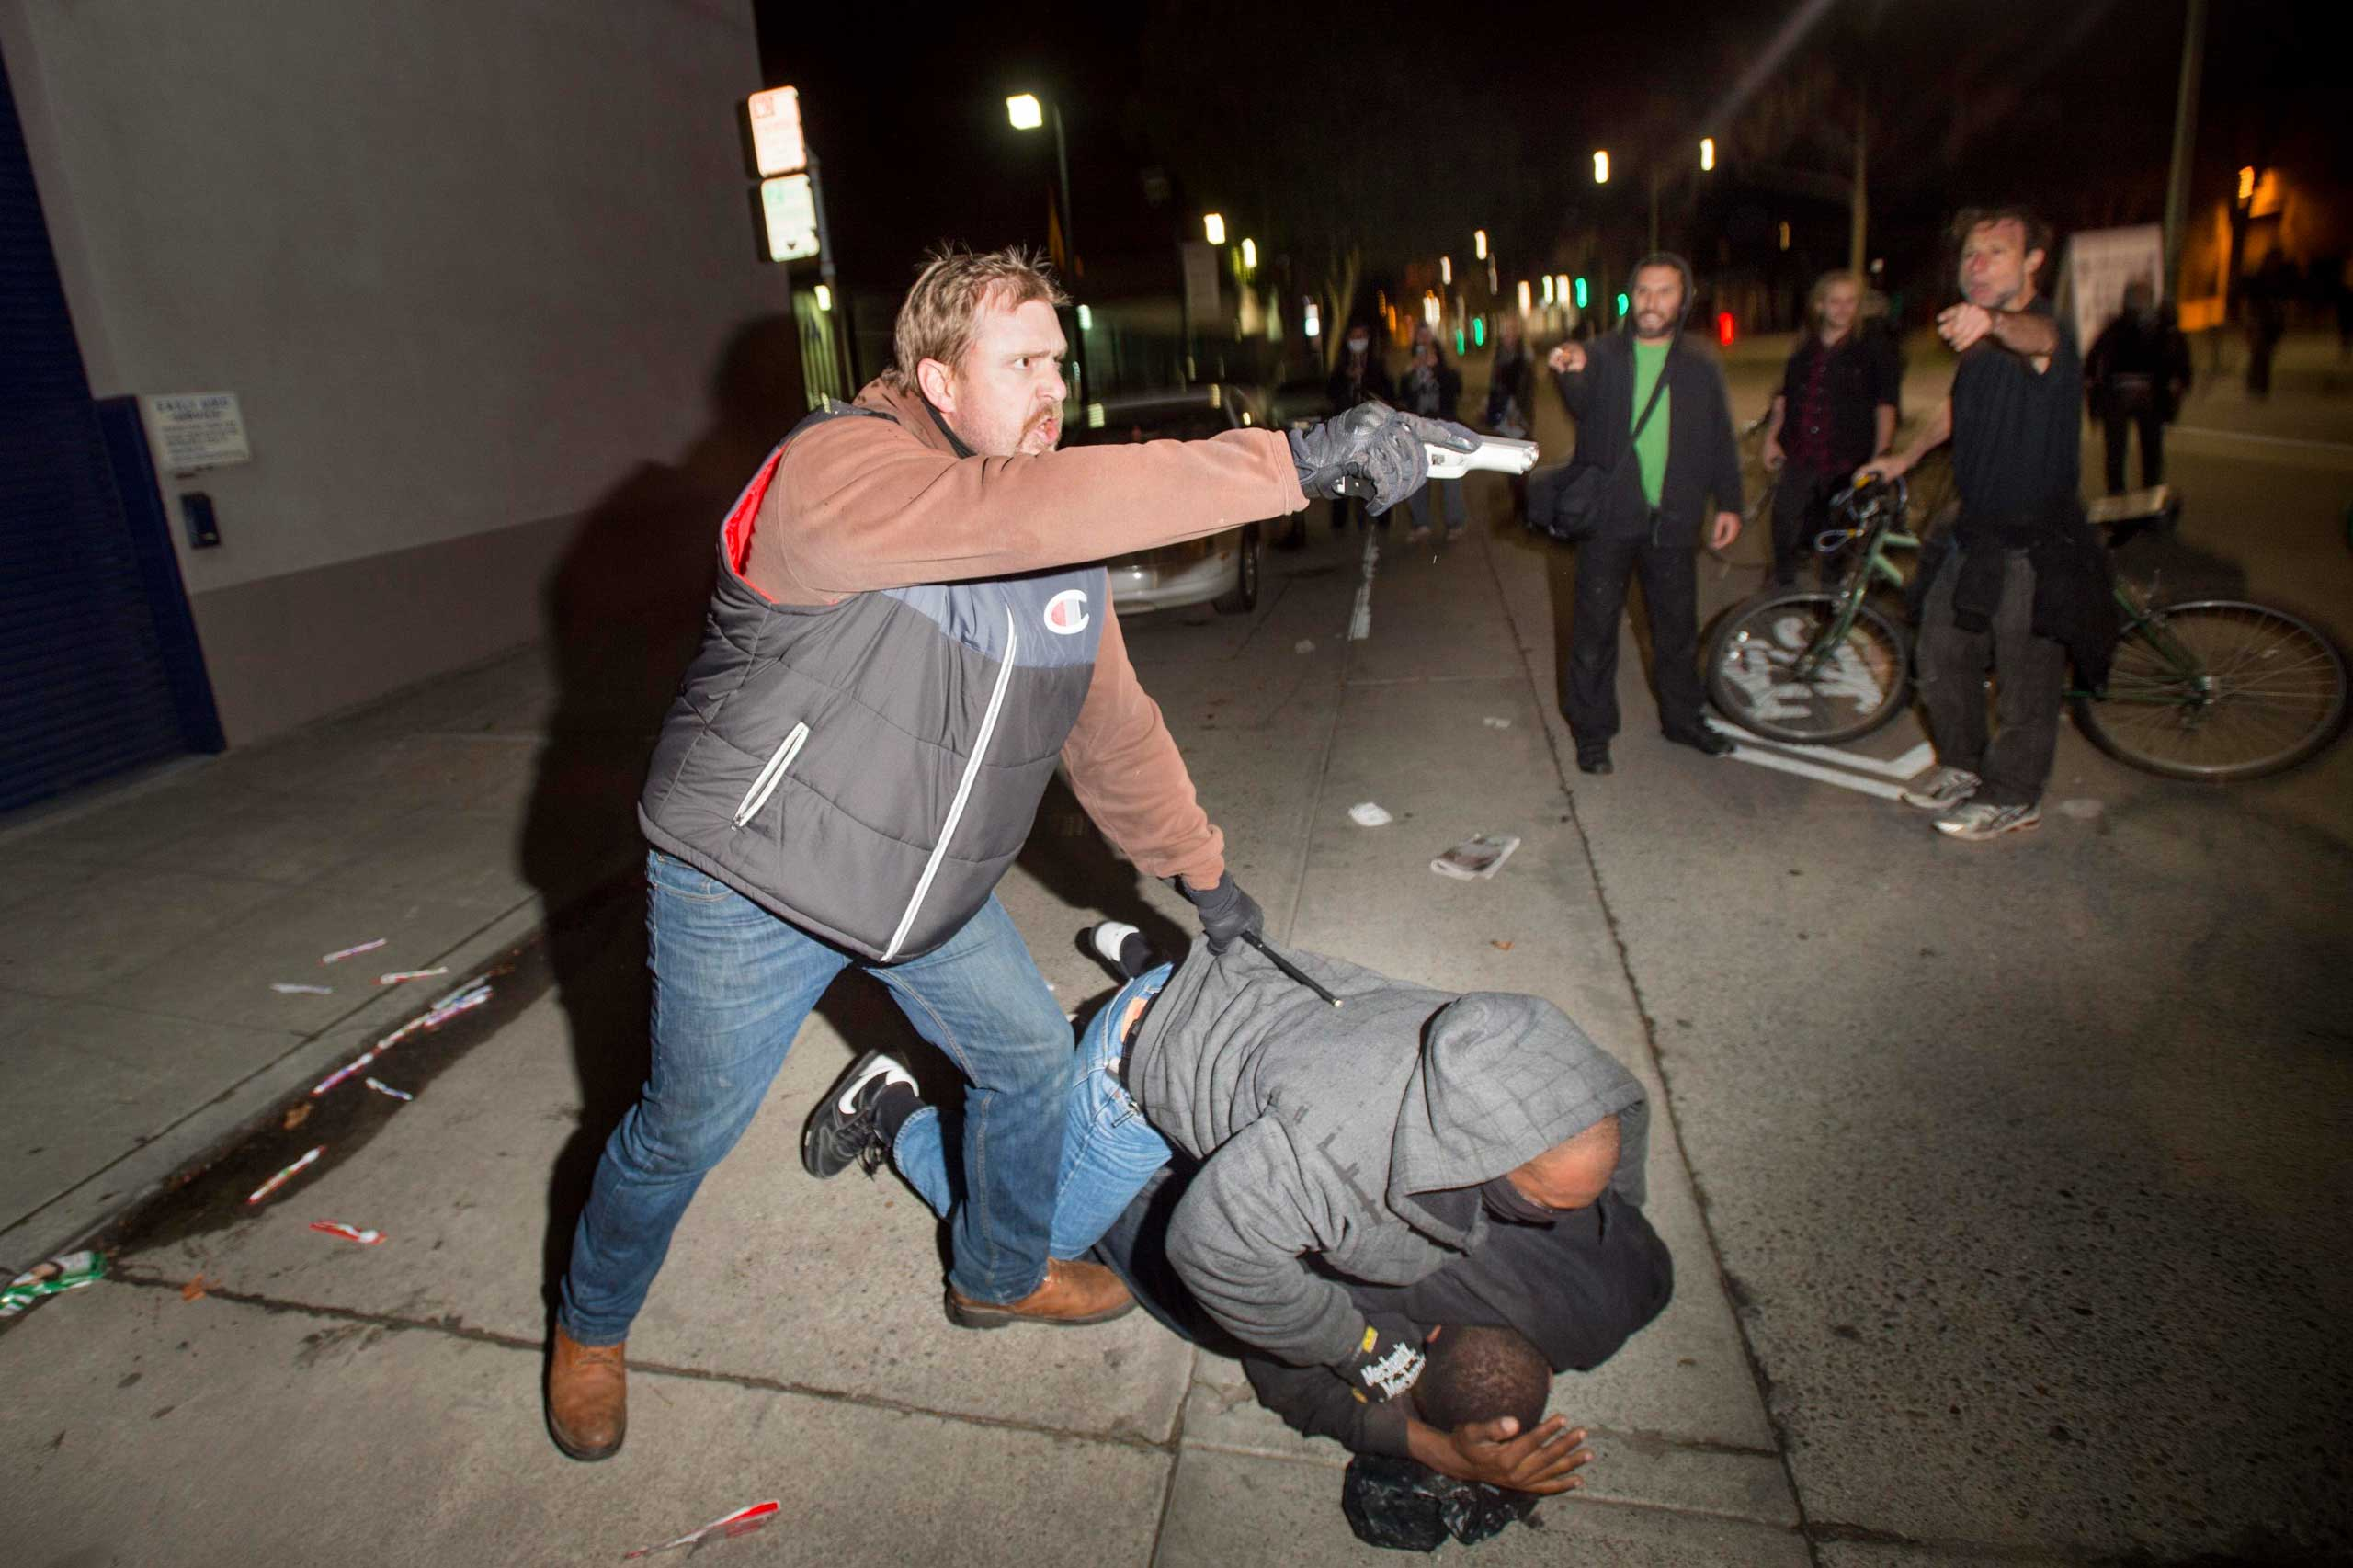 An undercover police officer aims his gun at protesters after some in the crowd attacked him and his partner in Oakland, Calif. on Dec. 10, 2014.